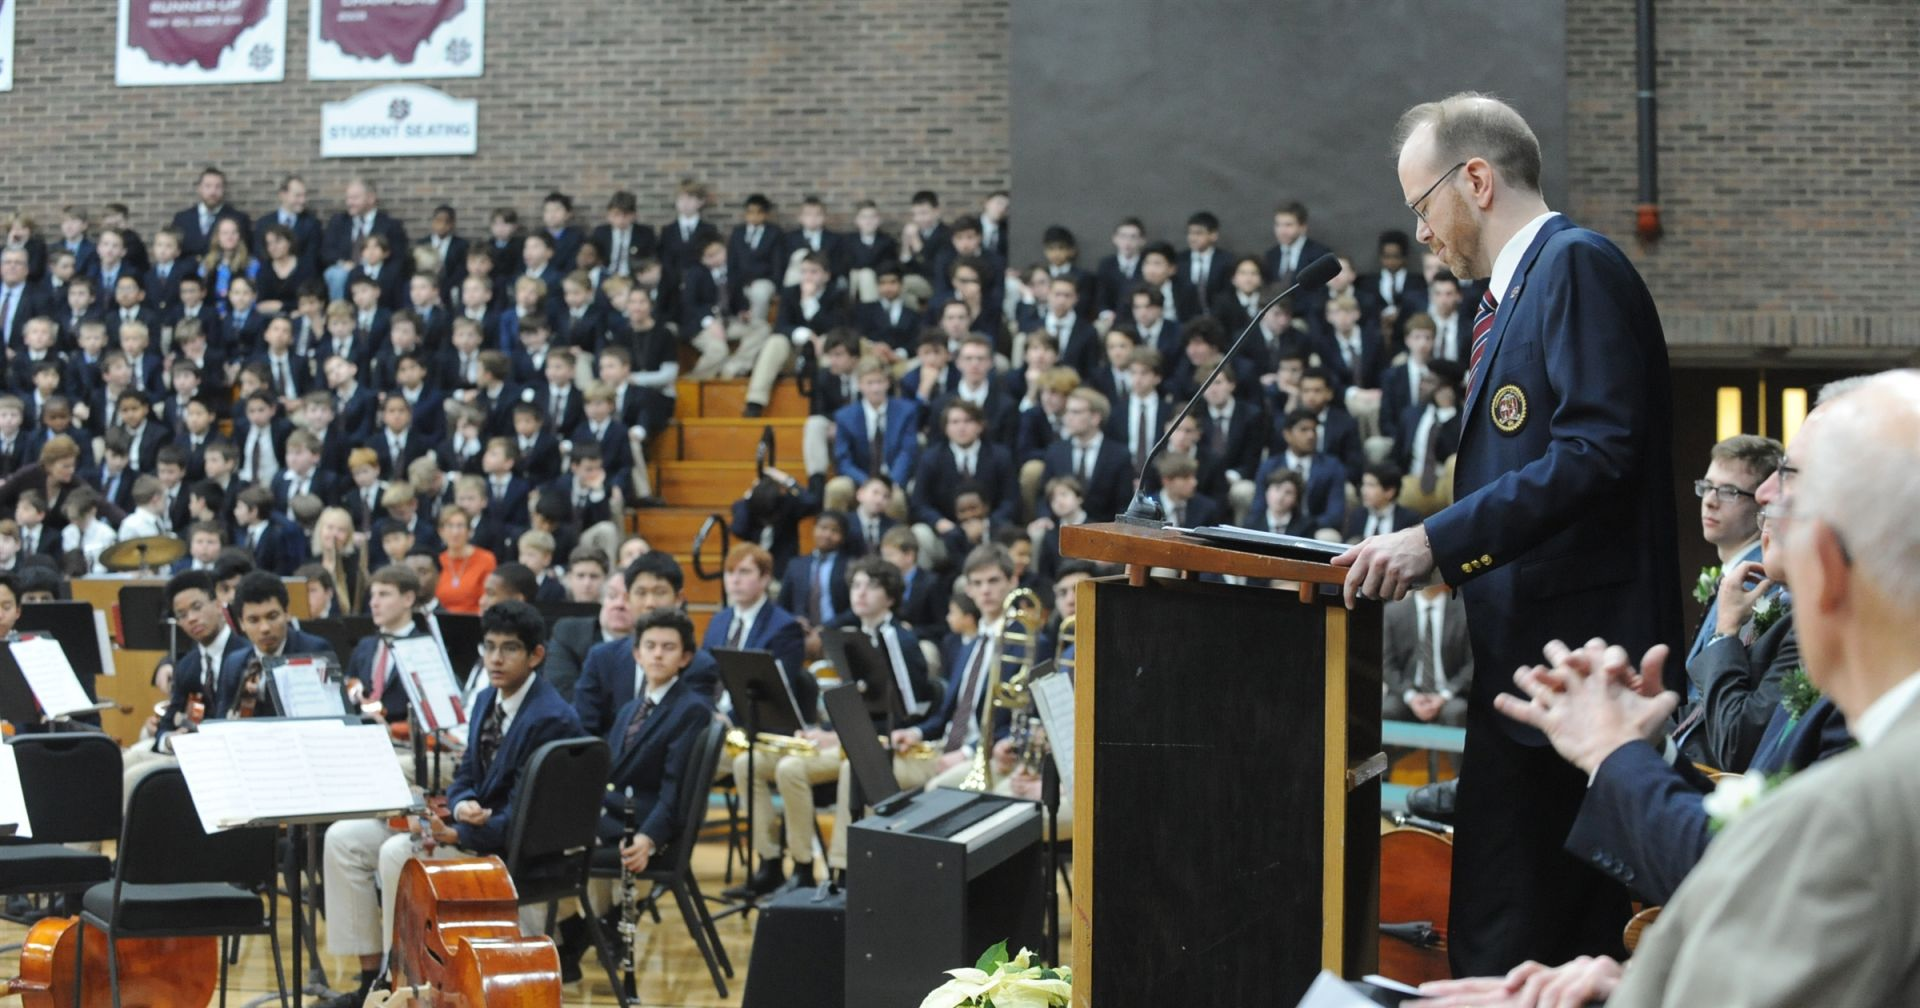 Head of School Patrick Gallagher addresses the students, faculty, parents, alumni and guests.